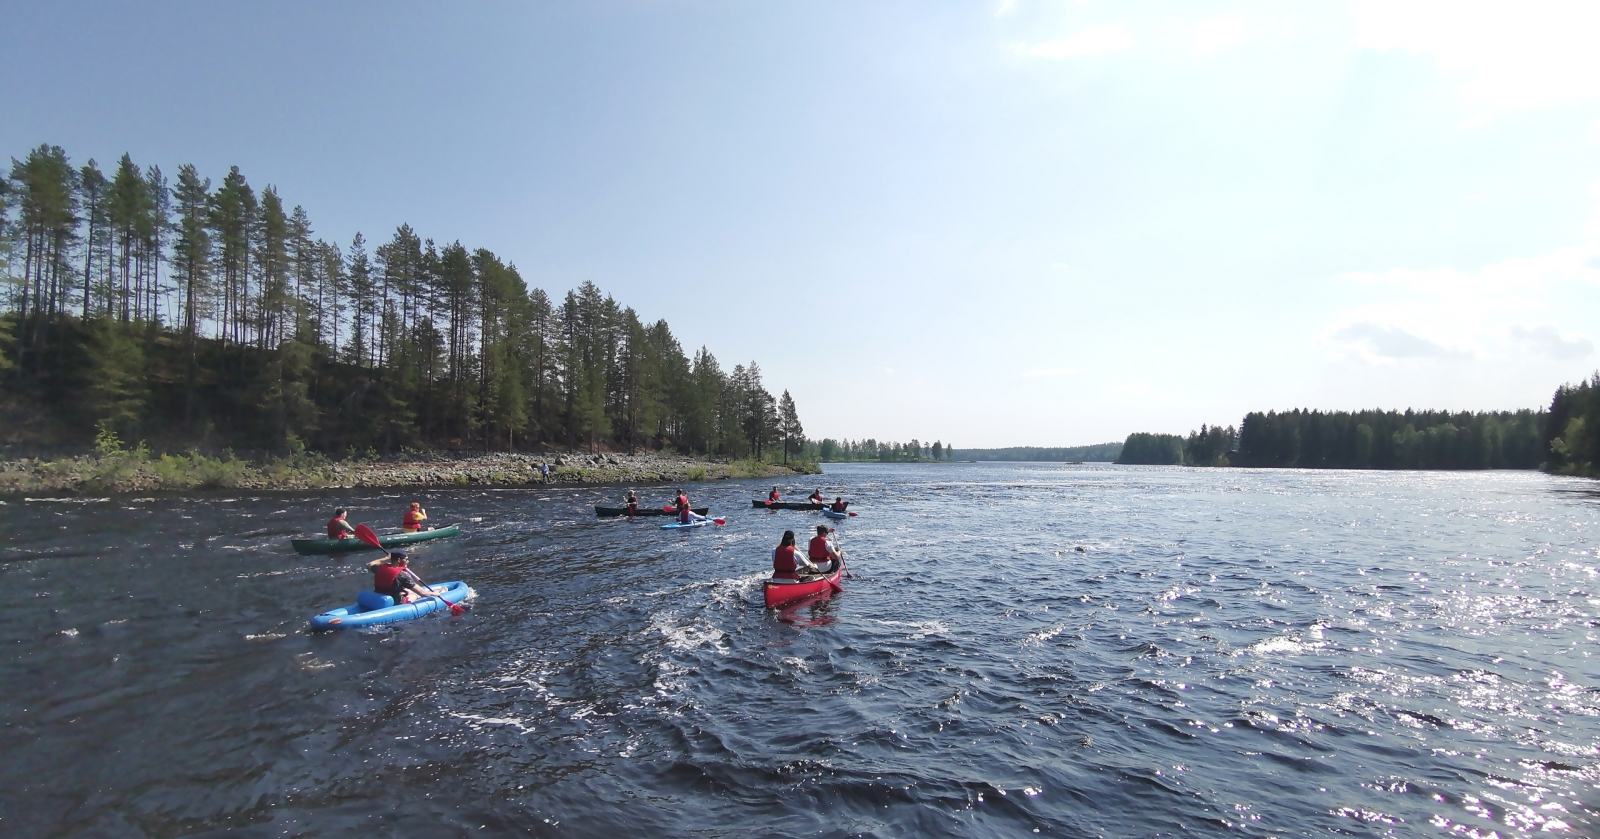 River Rafting, Lapland Canoe Trips and Adventures - Swedish Lapland in Summer